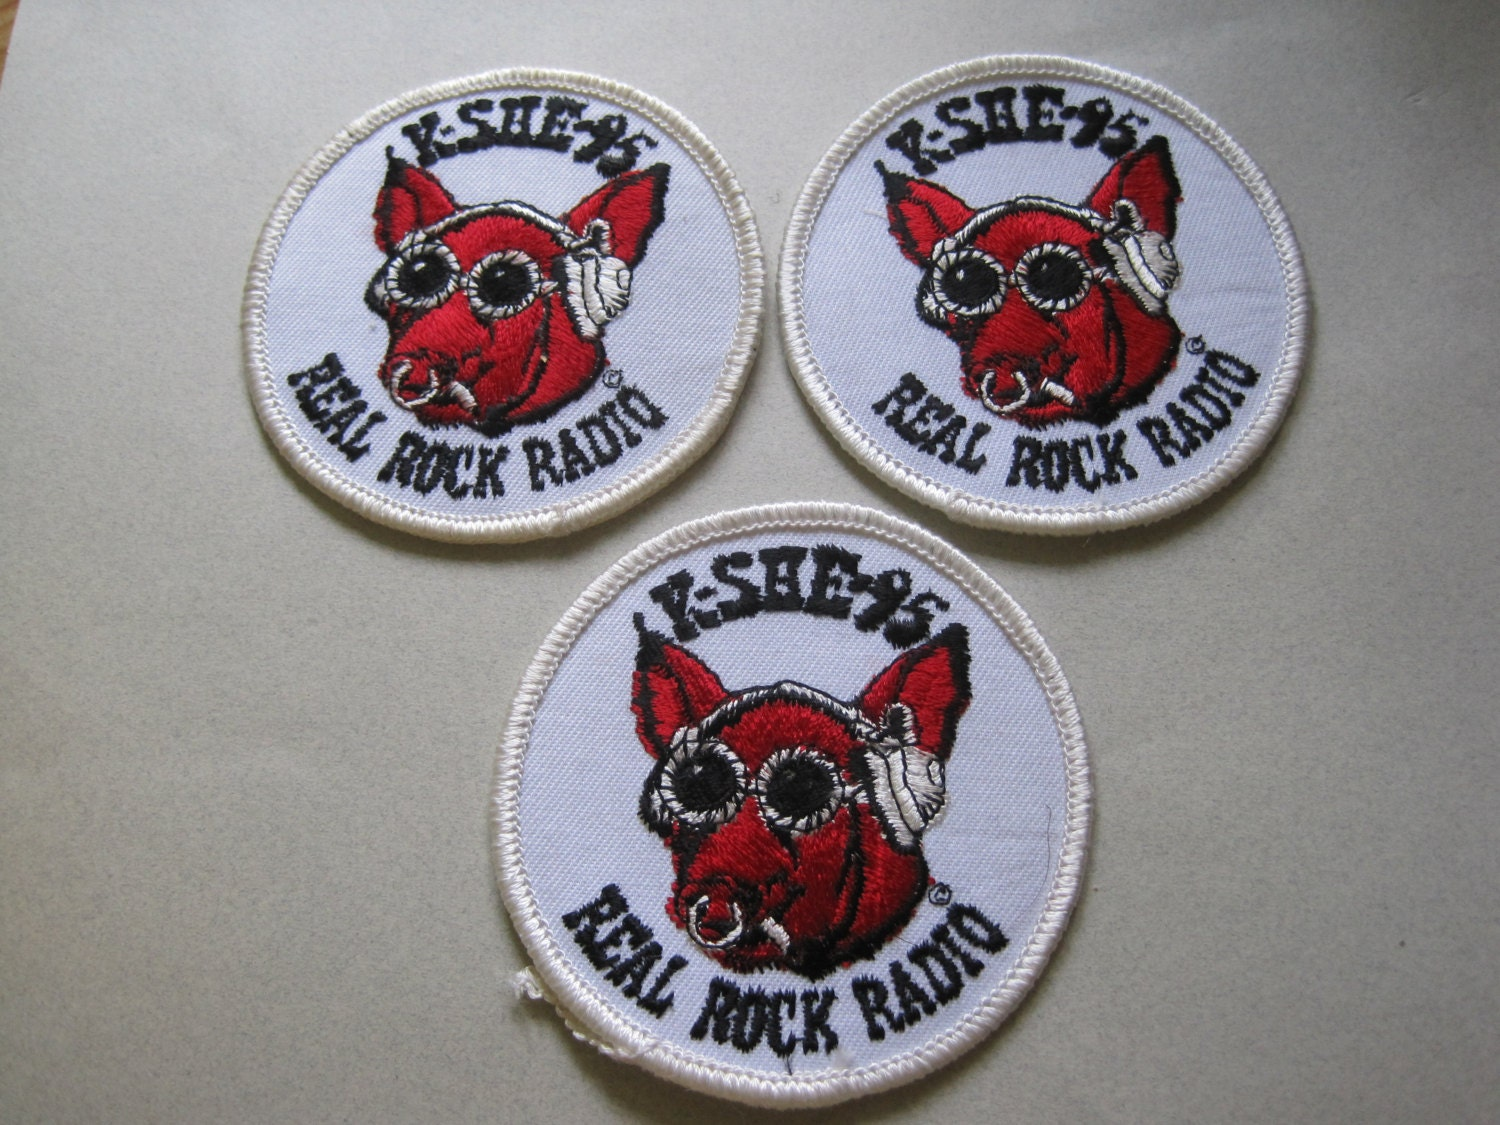 Vintage Rare 1970s Kshe 95 Real Rock Pig Sweetmeat Logo With